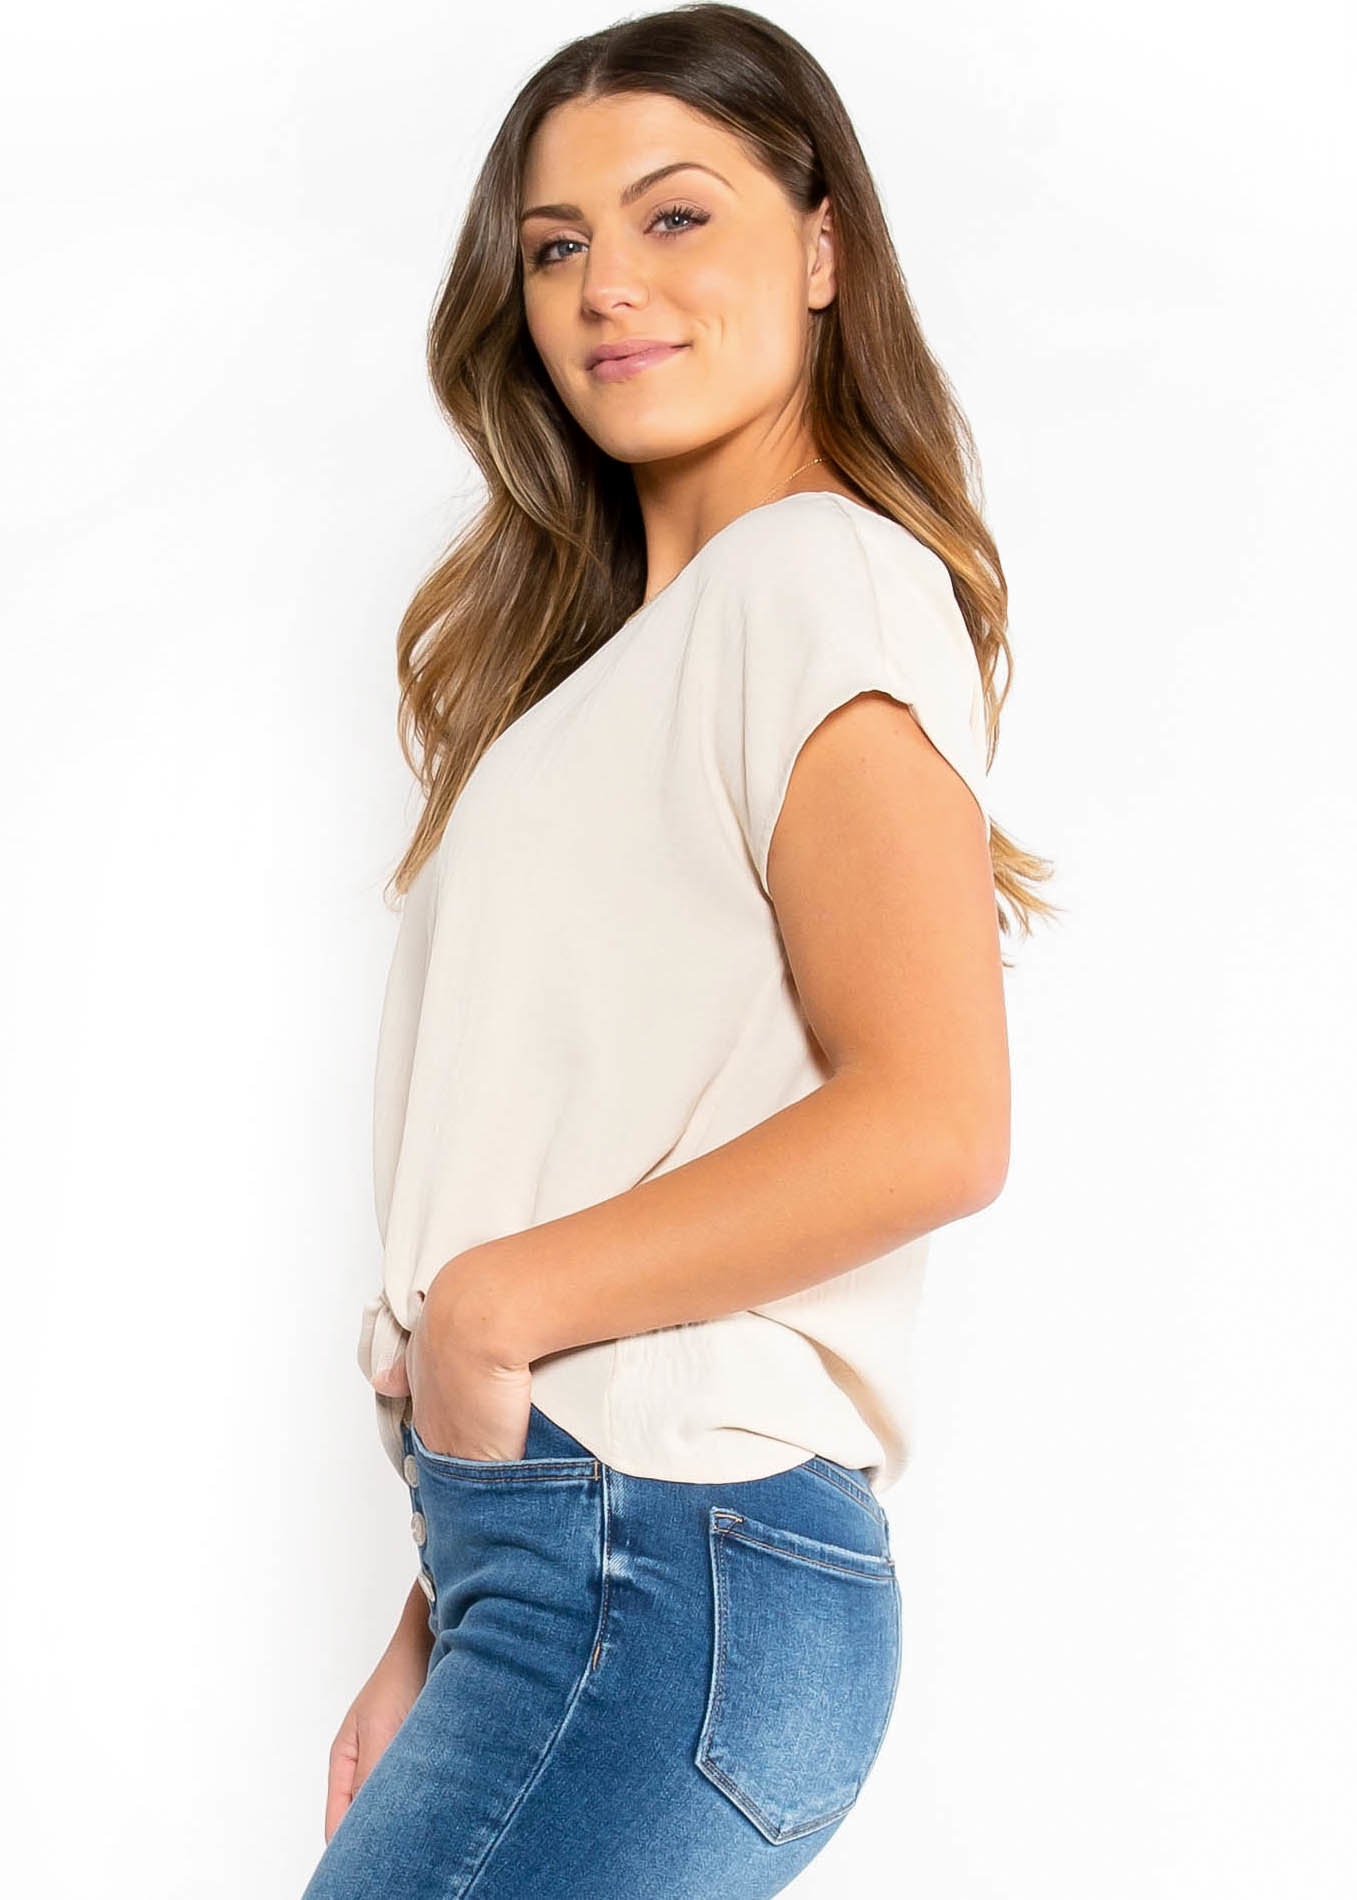 SIMPLE STATEMENT KNOTTED BLOUSE